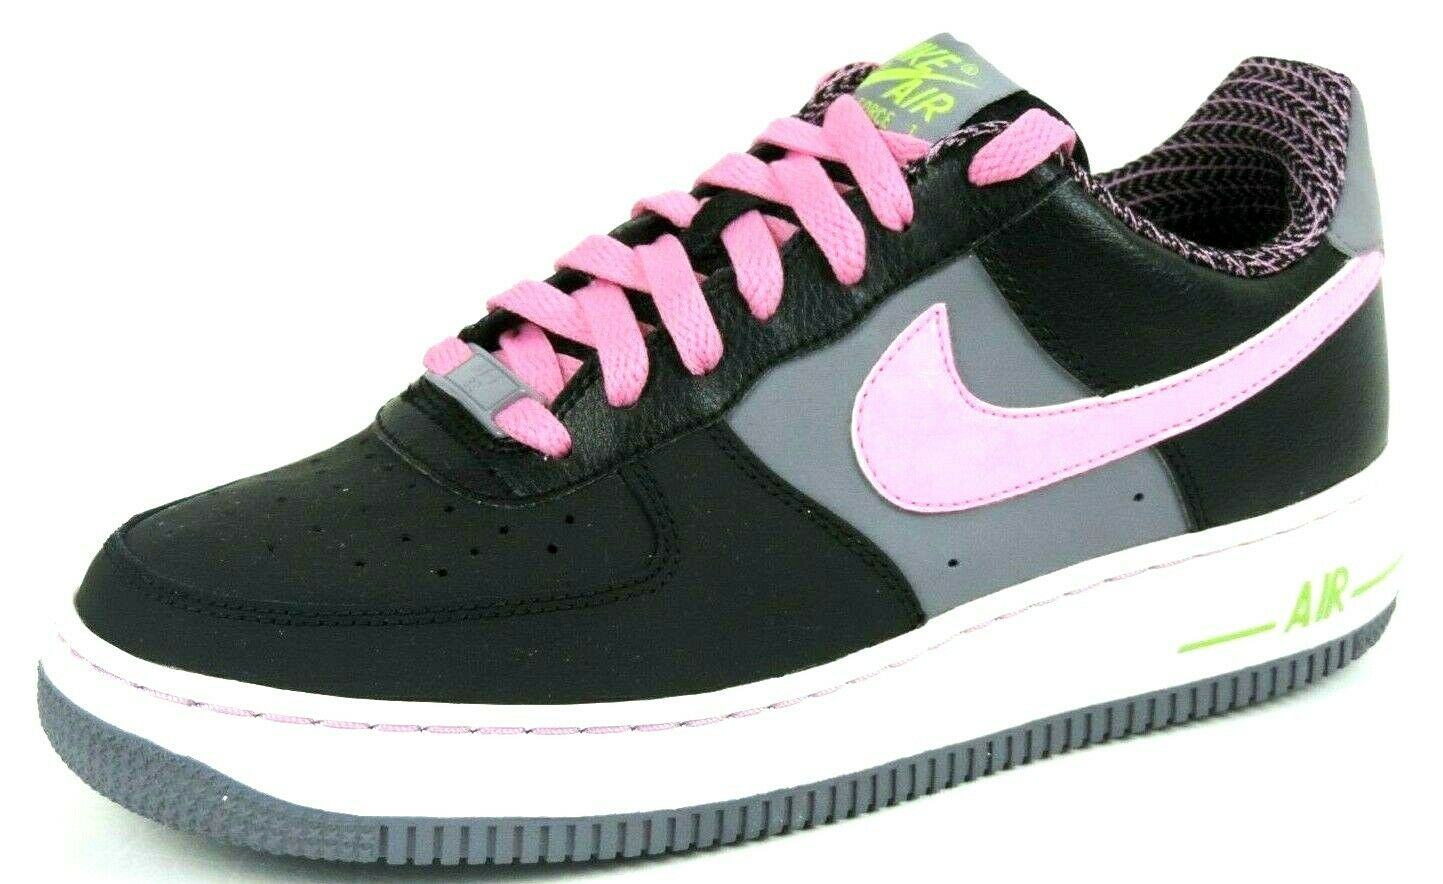 Nike Air Force 1 GS 314219 006 Girls Shoes Womens Leather Black Sneakers Casual